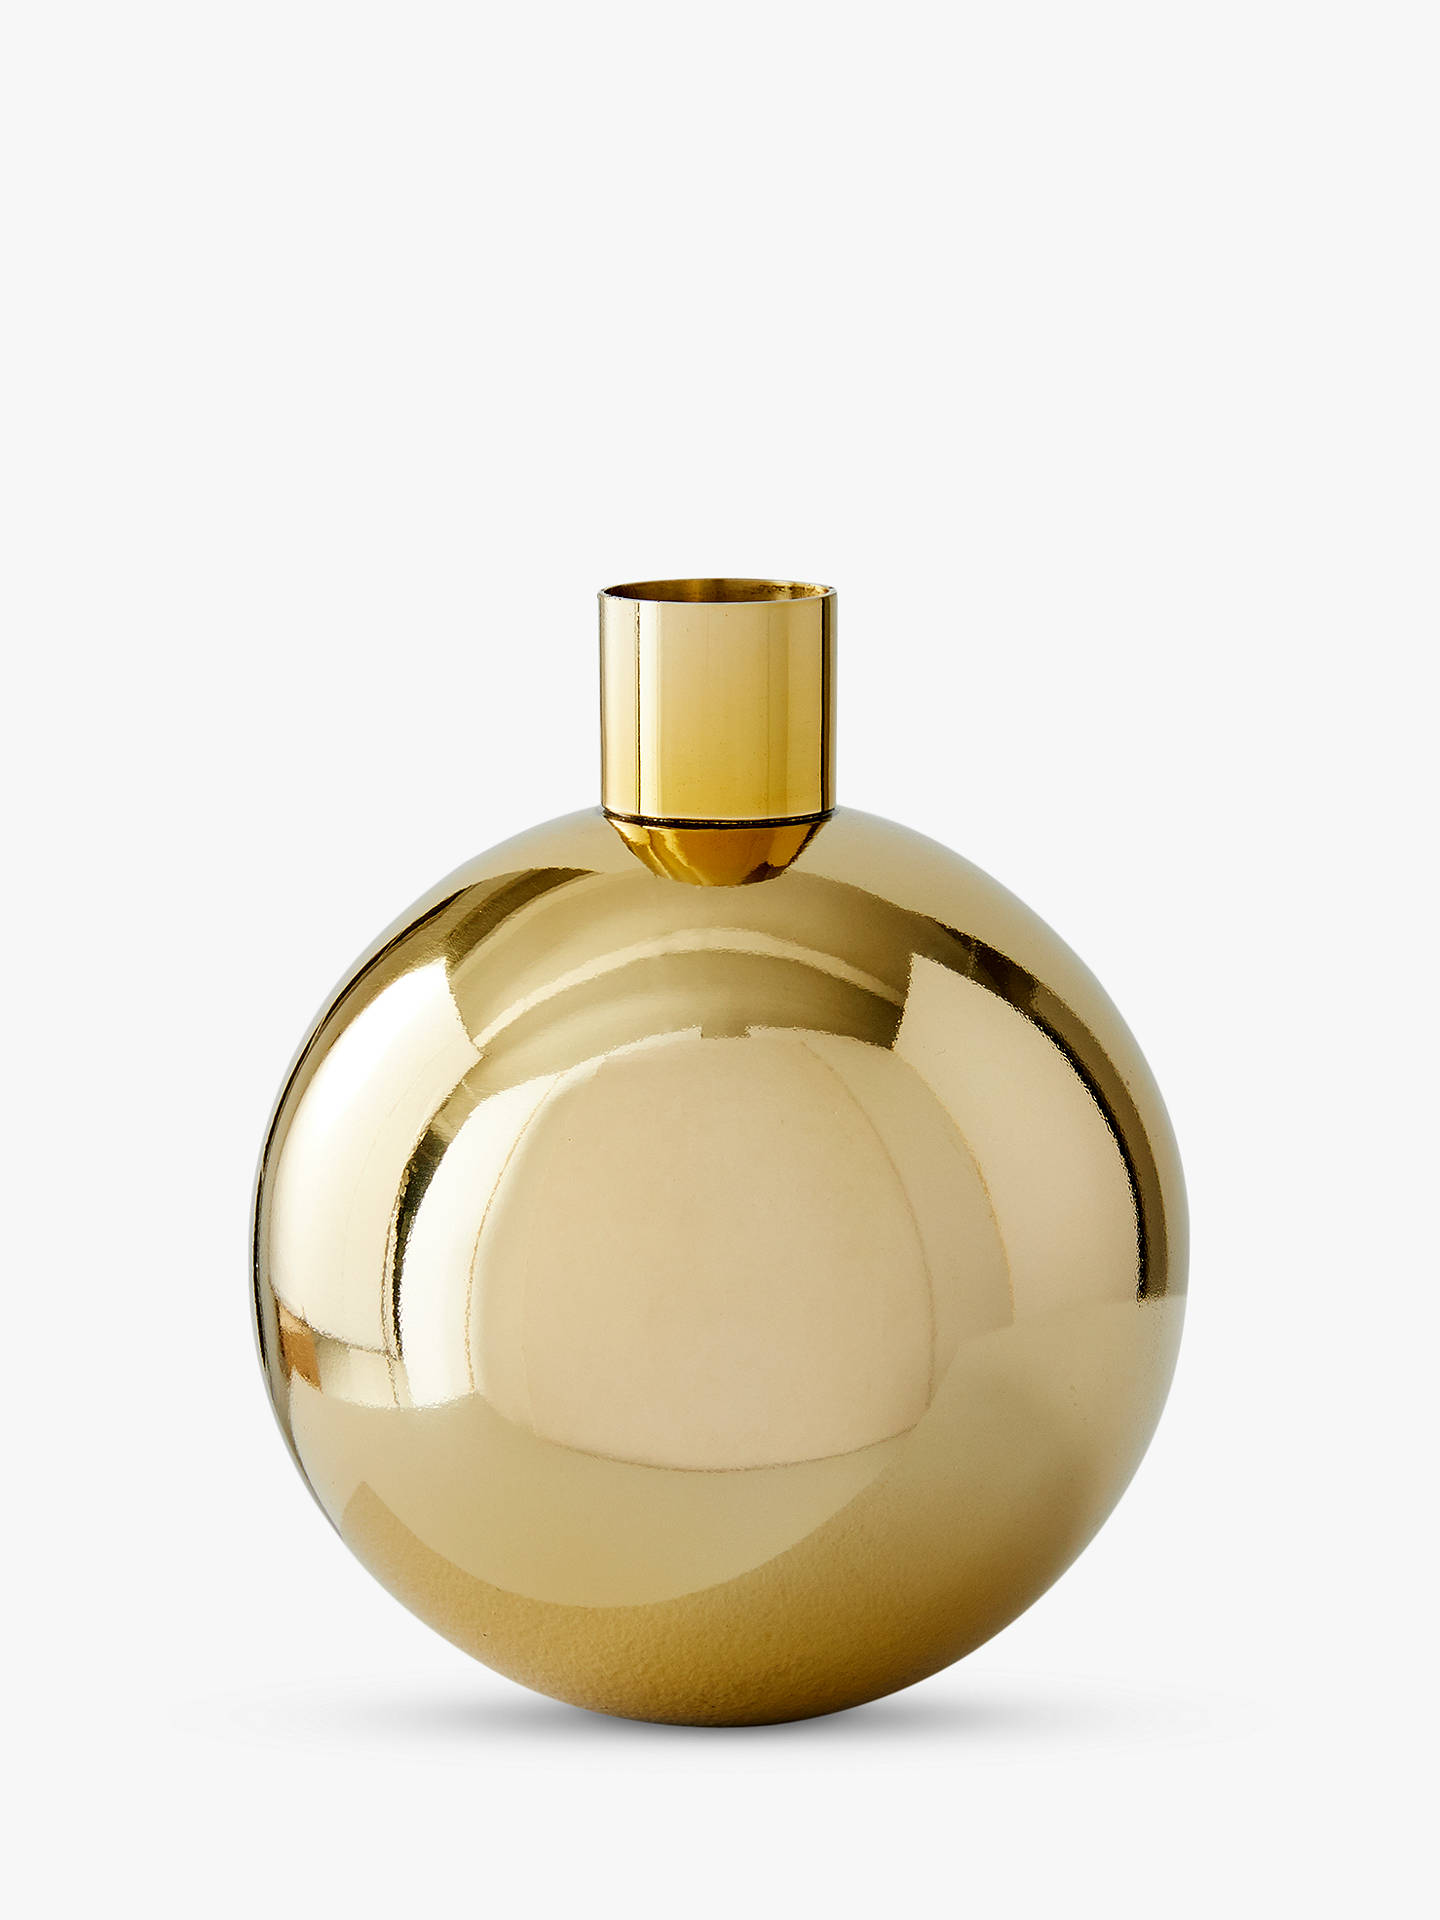 West Elm Foundations Round Small Bud Vase, Brass, H15cm by West Elm